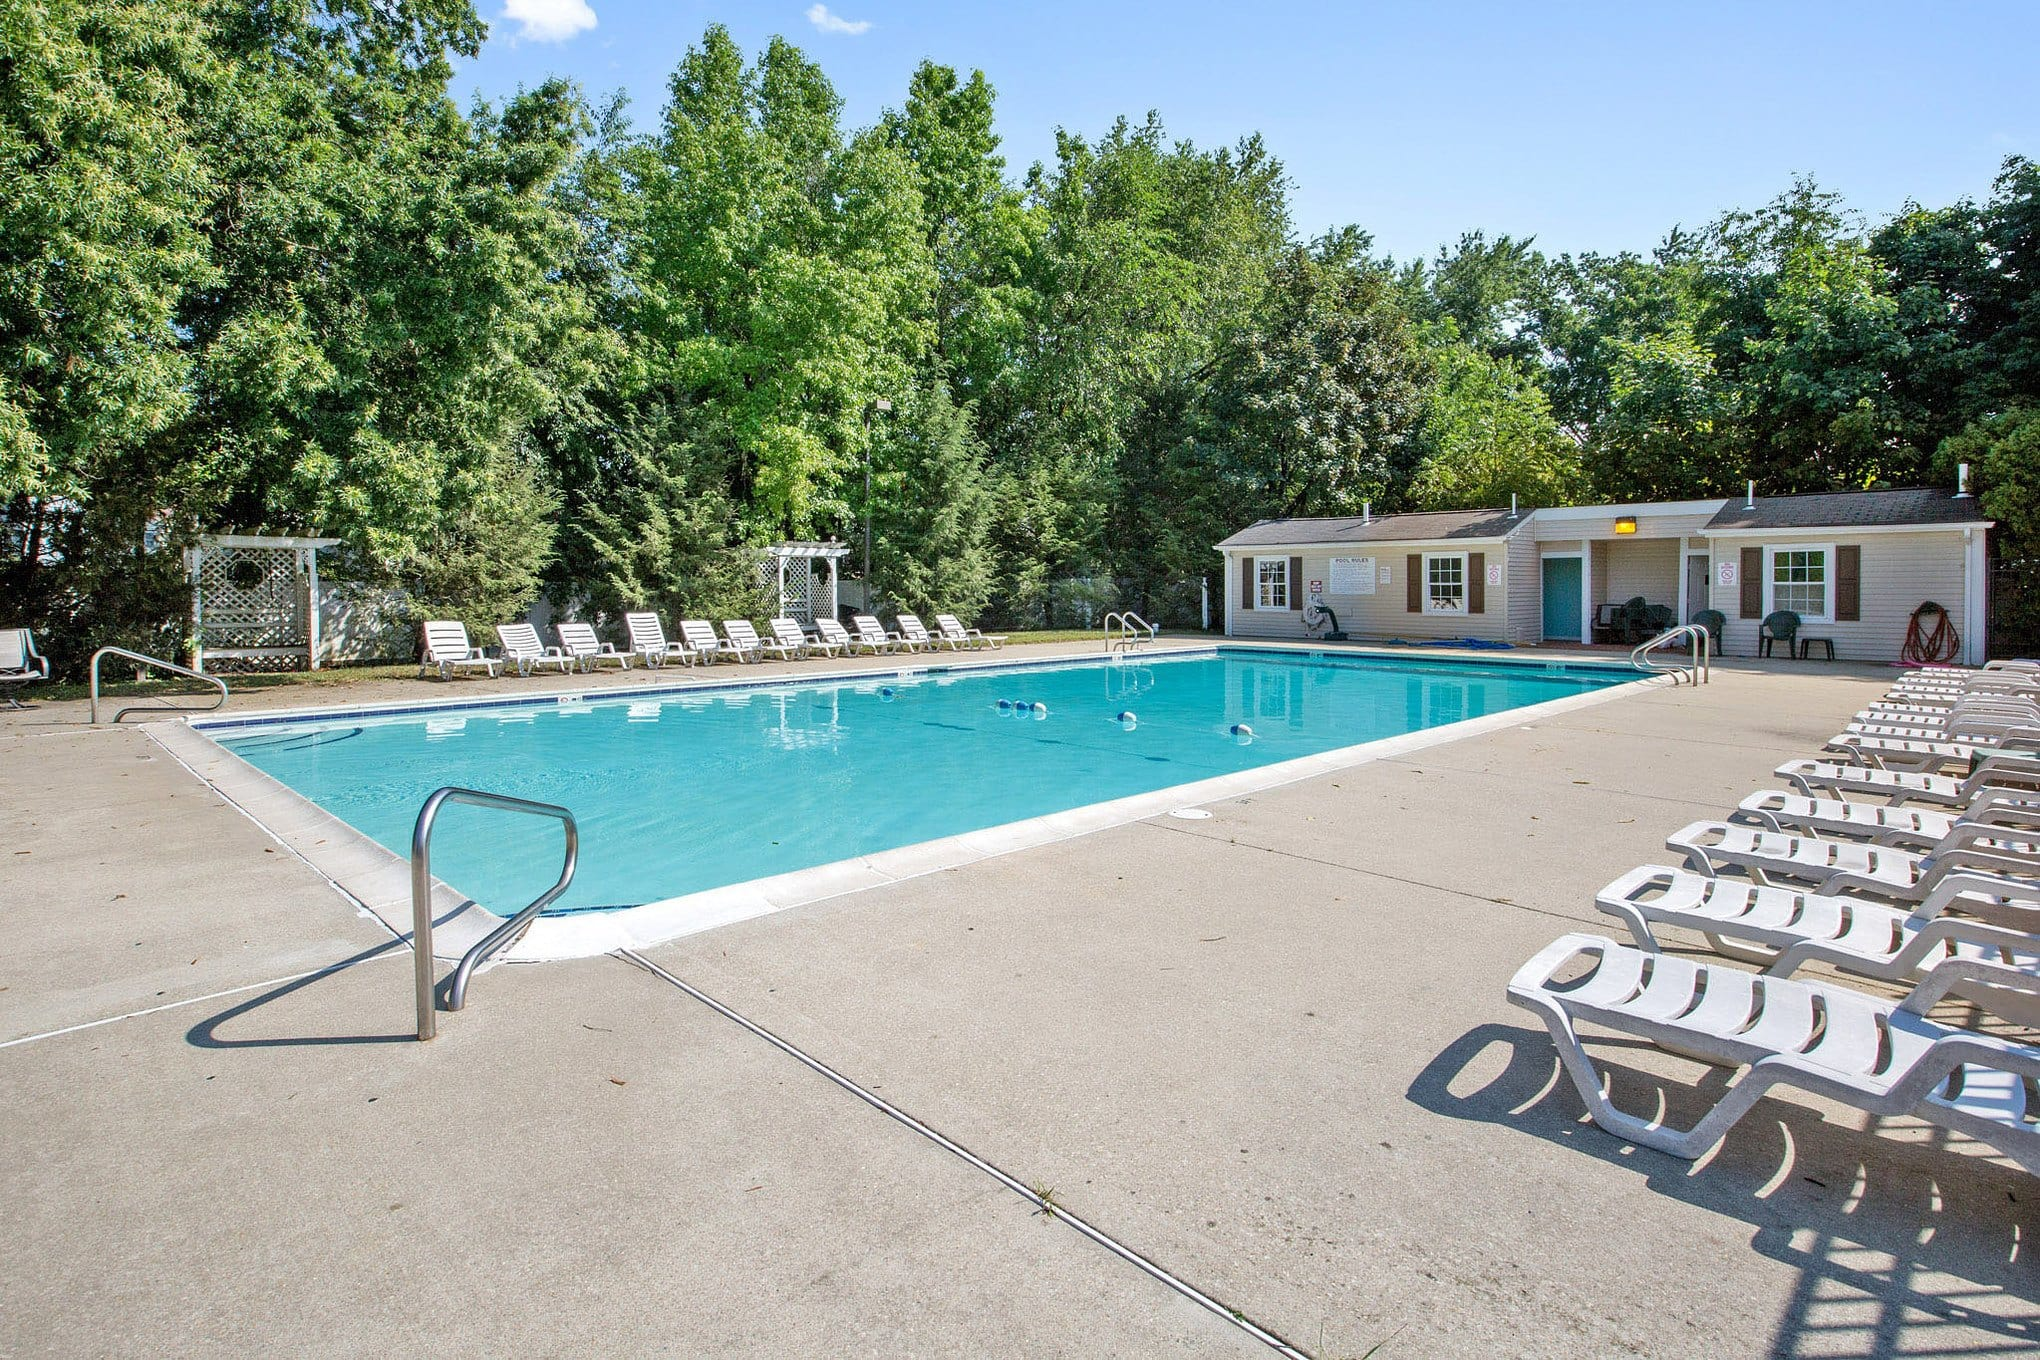 Pool at Village Square Apartments in Mount Holly, NJ